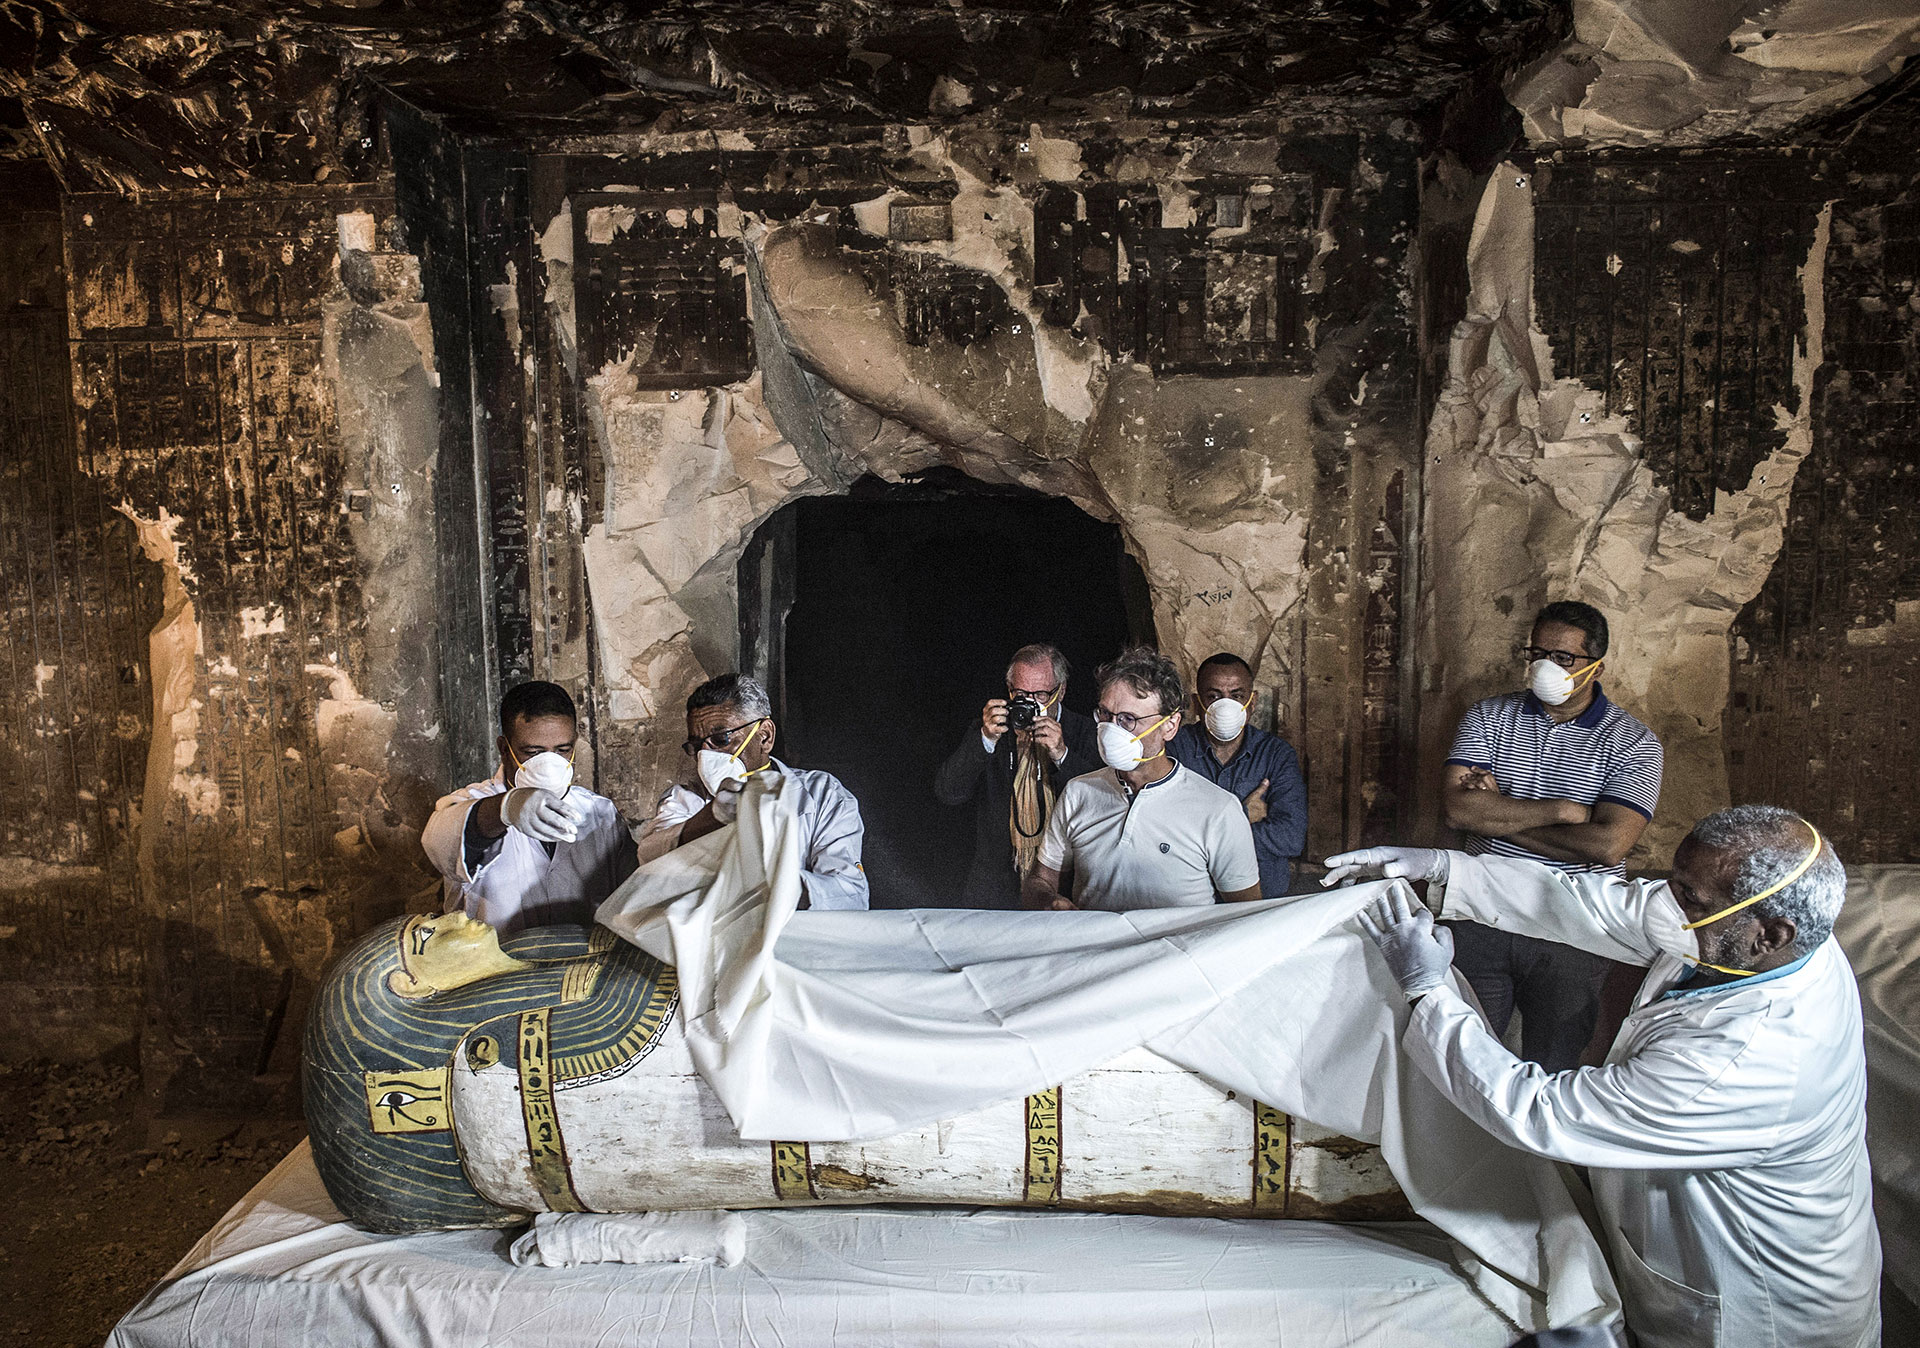 Egypt's Antiquities Minister Khaled el-Enany (R) and Mostafa Waziri (2nd-R, behind), the Secretary General of the Supreme Council of Antiquities, inspect an intact sarcophagus during its opening at the site of Tomb TT33 at Al-Assasif necropolis on the west bank of the Nile north of the southern Egyptian city of Luxor on November 24, 2018, after it was discovered earlier this month by a French mission. - Located between the royal tombs at the Valley of the Queens and the Valley of the Kings, the Al-Assasif necropolis is the burial site of nobles and senior officials close to the pharaohs. (Photo by Khaled DESOUKI / AFP)